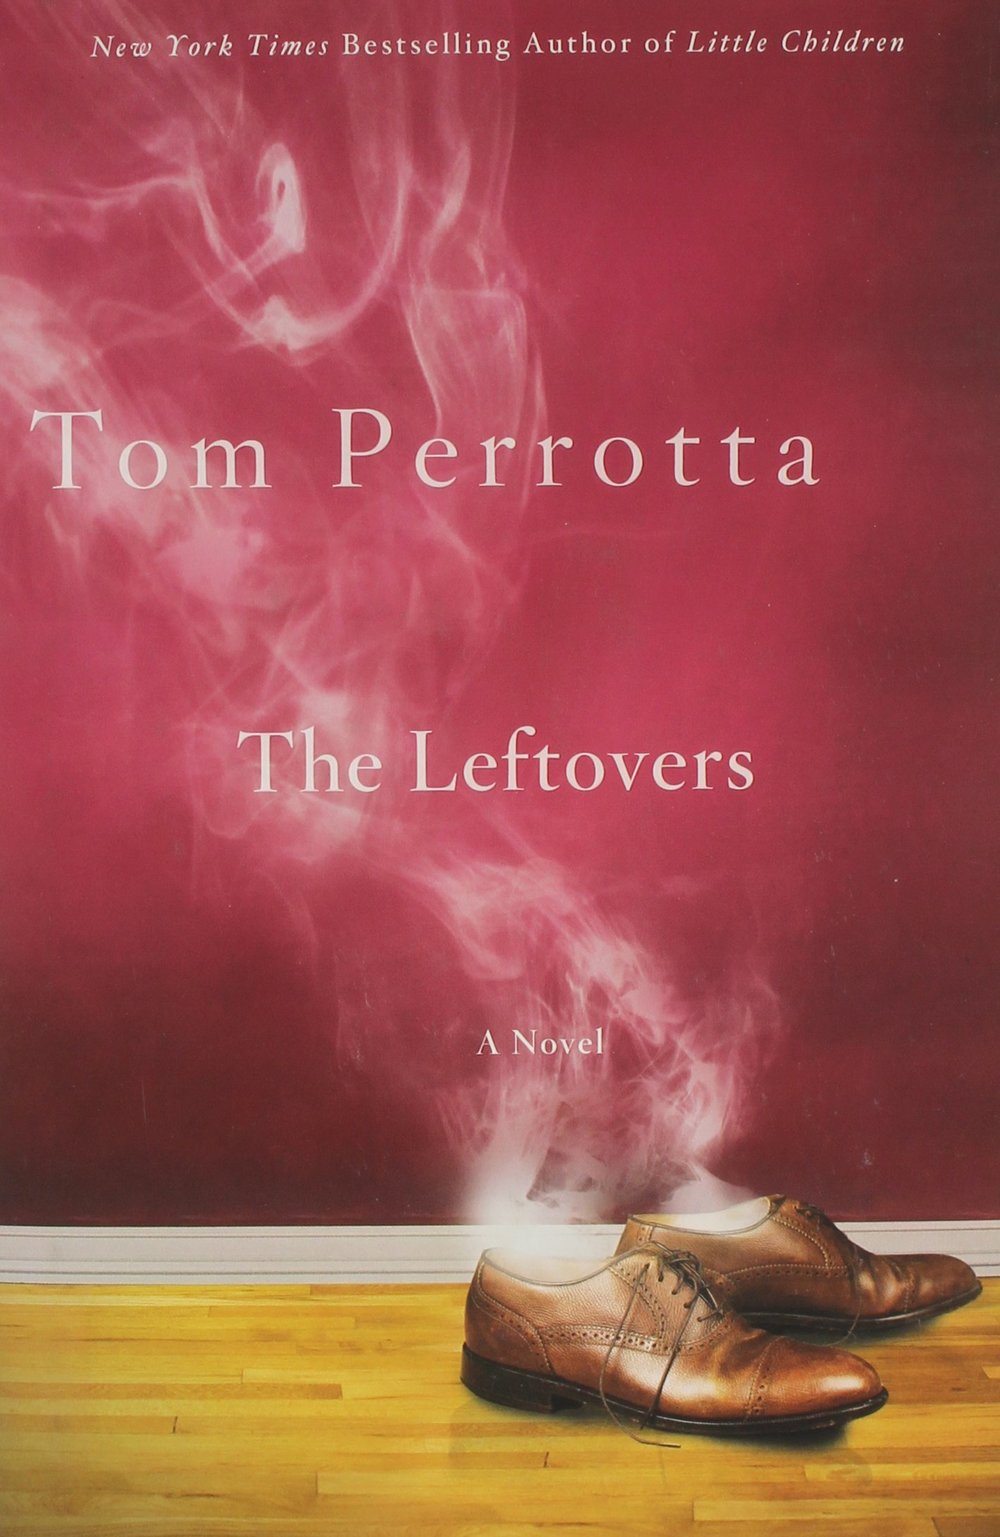 BYT Book Club: The Leftovers (8/29/14)